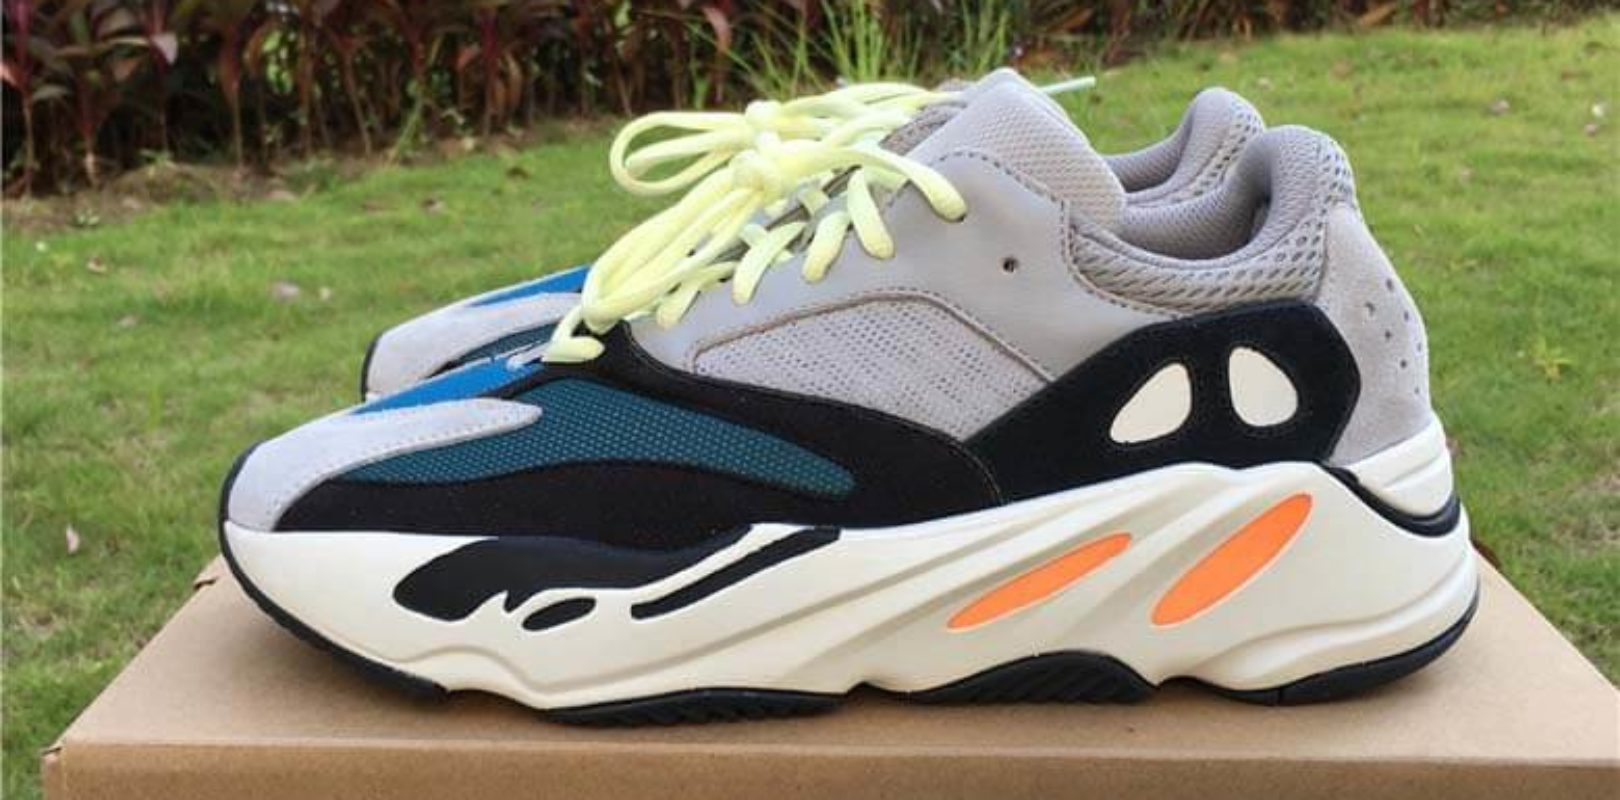 check out 9c6c5 b474b Adidas Yeezy Boost 700 (Wave Runner) Review: Can you wear ...